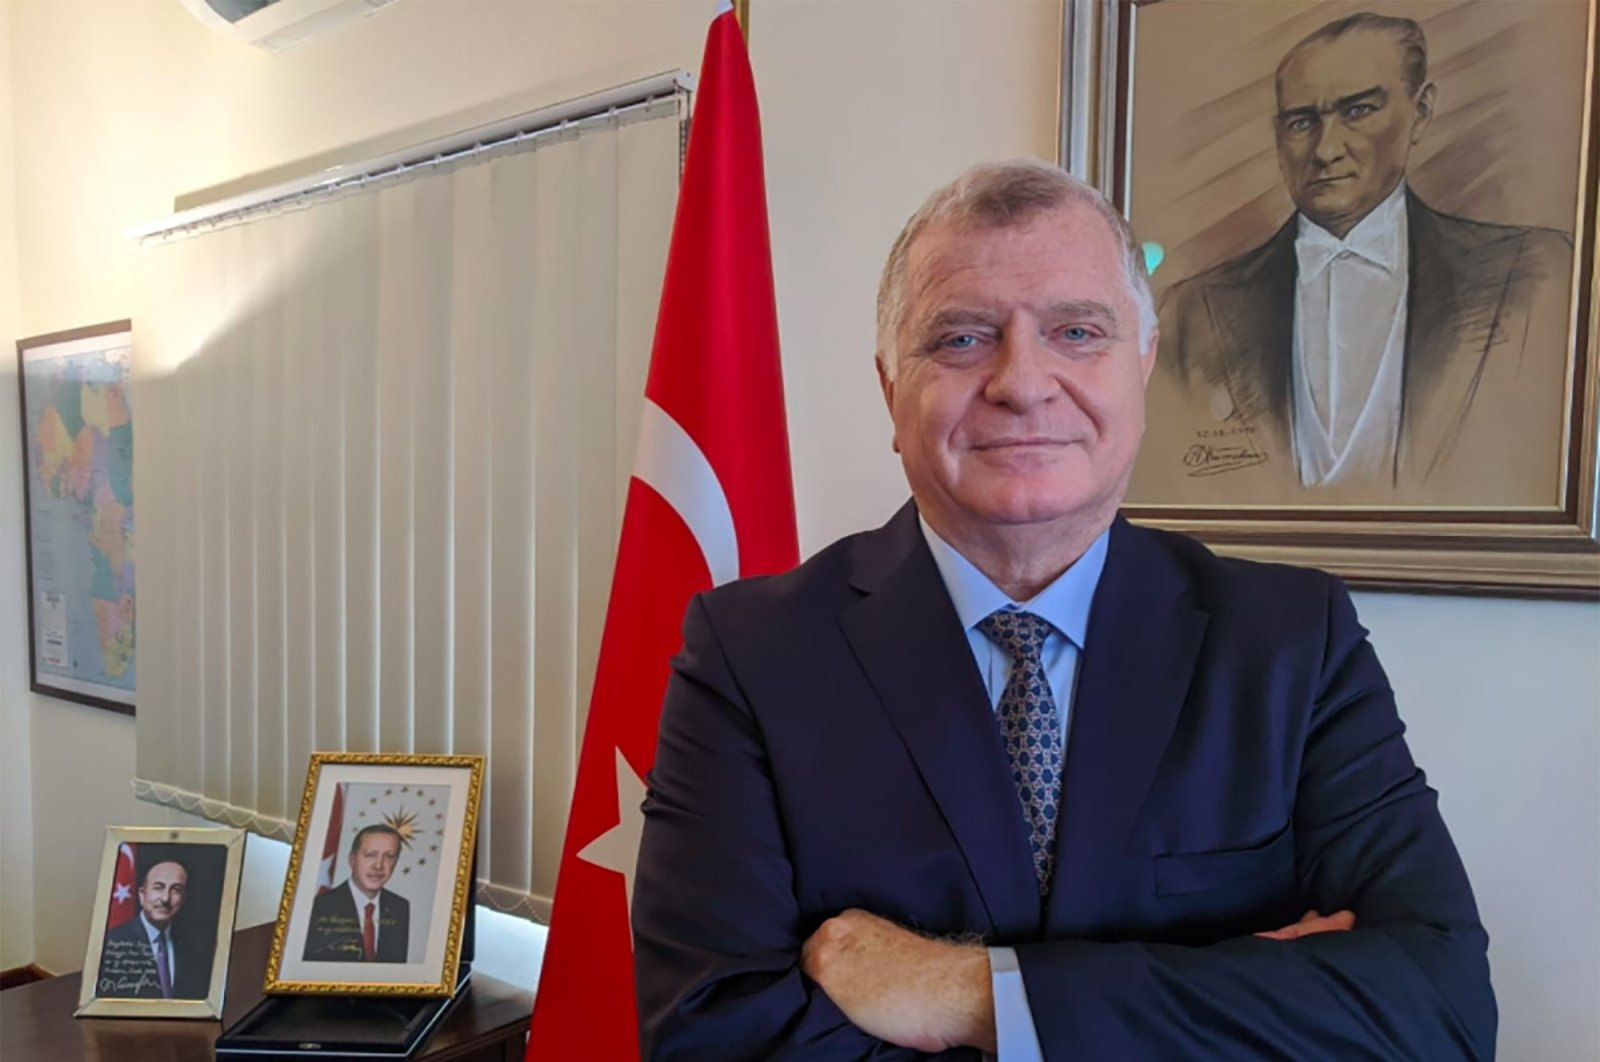 Ankara's envoy to Mozambique Avni Aksoy during an interview with the Anadolu Agency (AA), in Maputo, Mozambique, April 2, 2021. (AA)